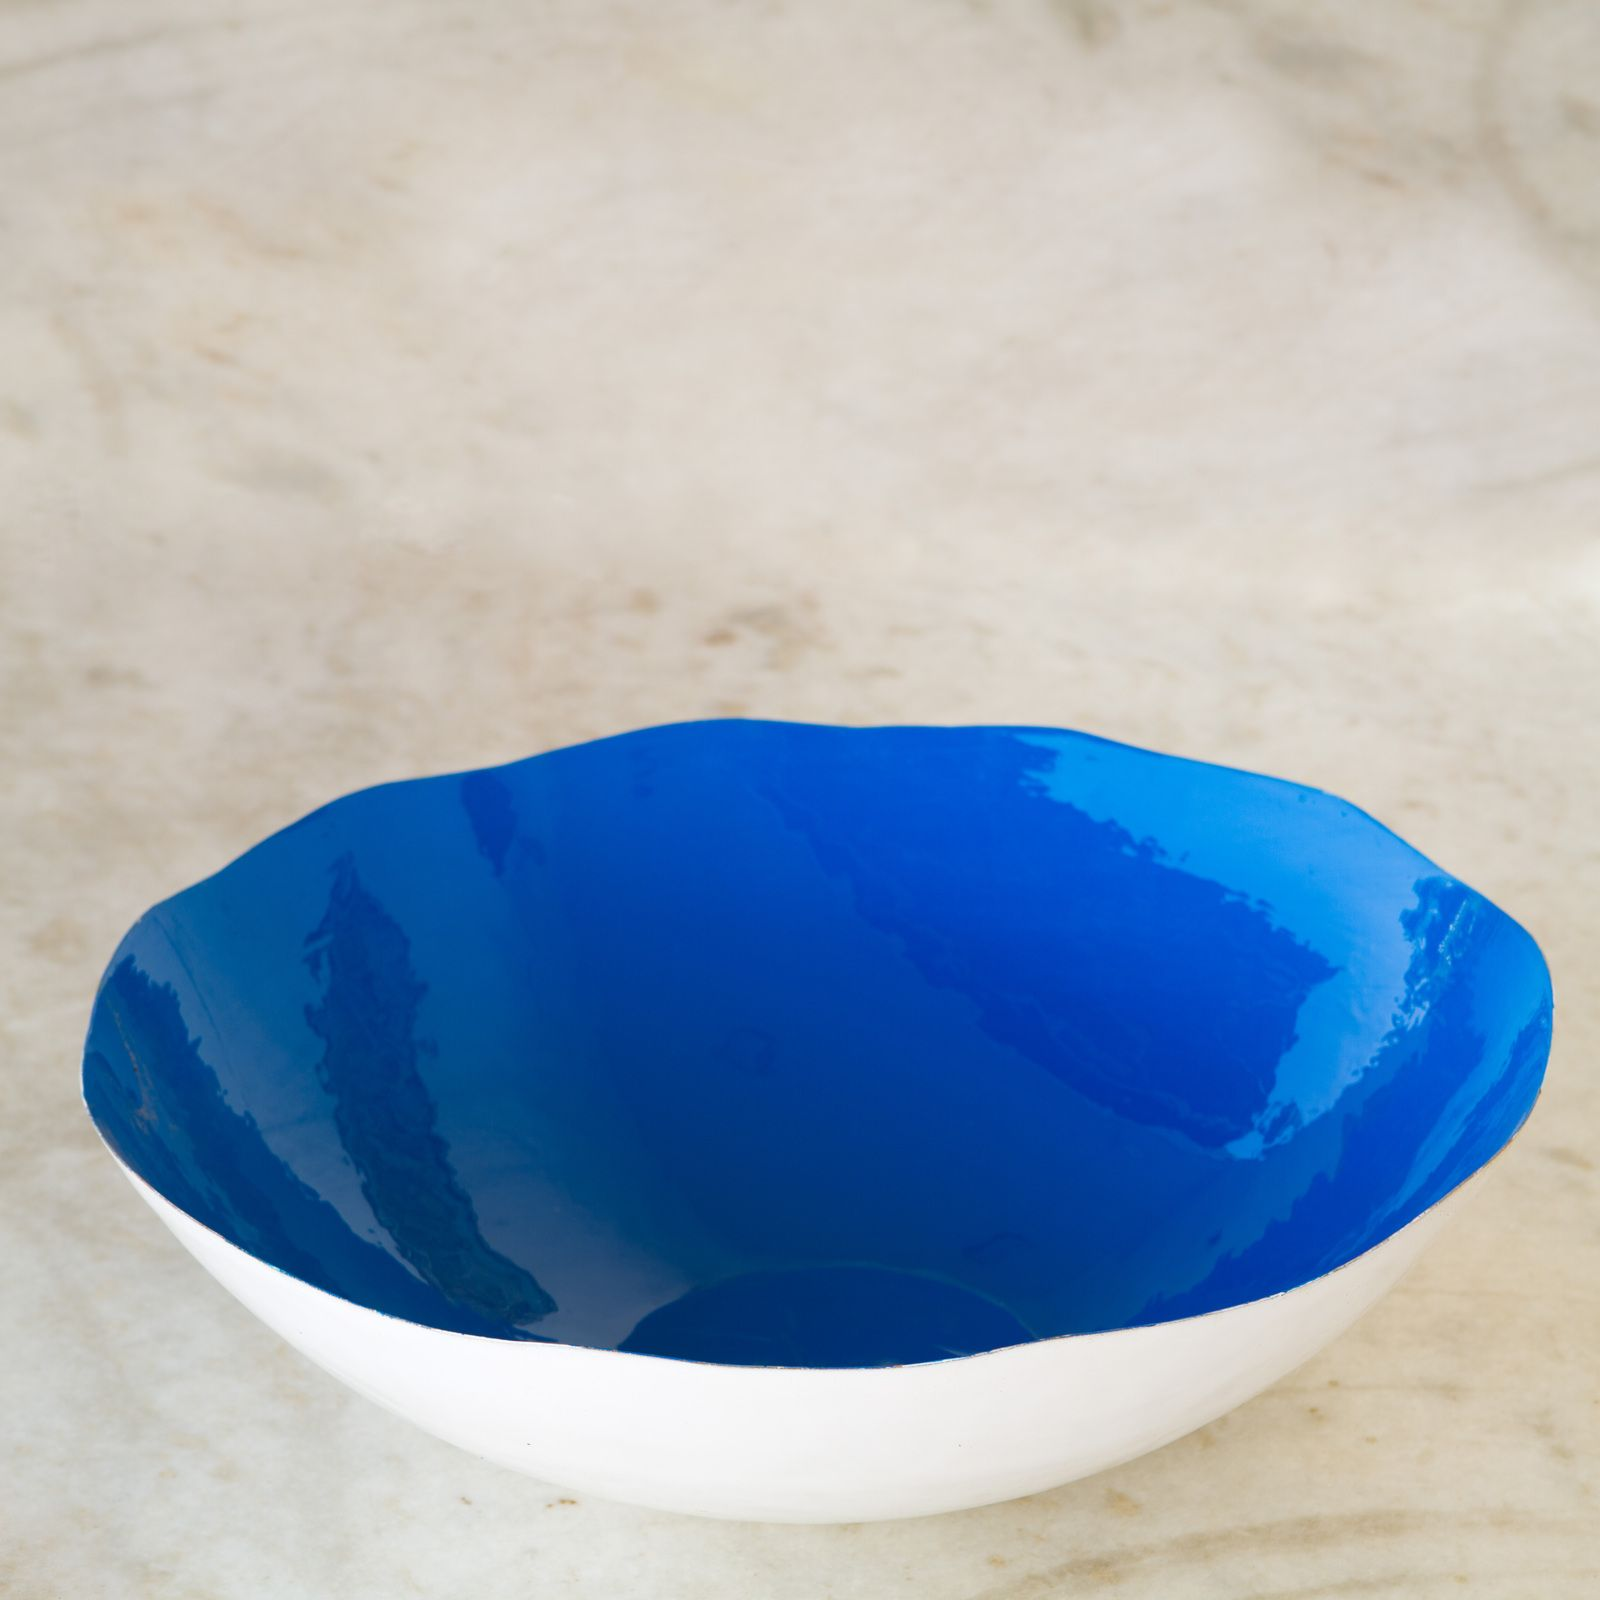 Blue Decorative Bowl Love Cobalt Enamel Decorative Bowl  Large  White  Blue